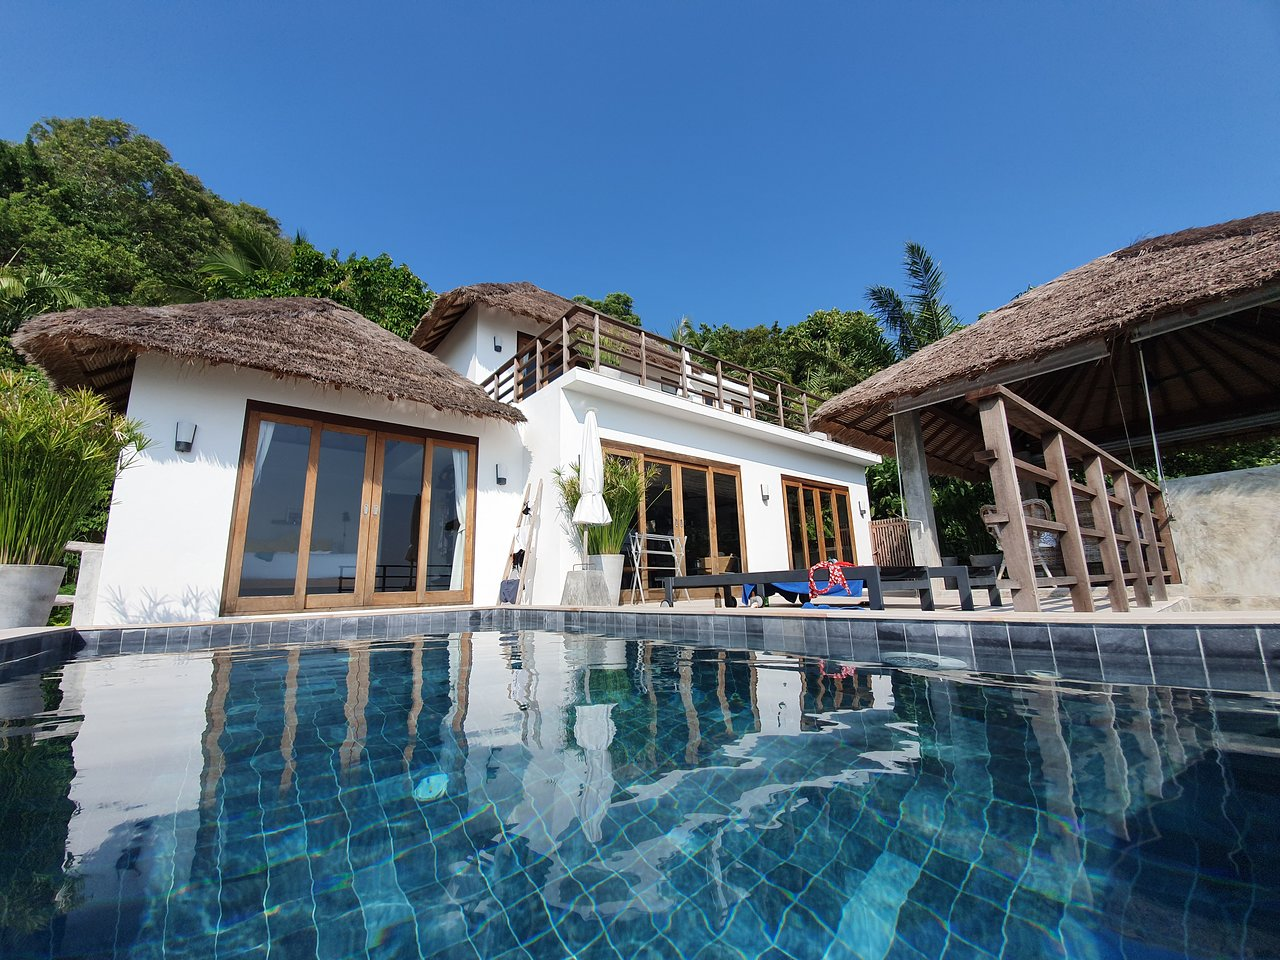 Cape Shark Pool Villas 126 2 6 8 Updated 2020 Prices